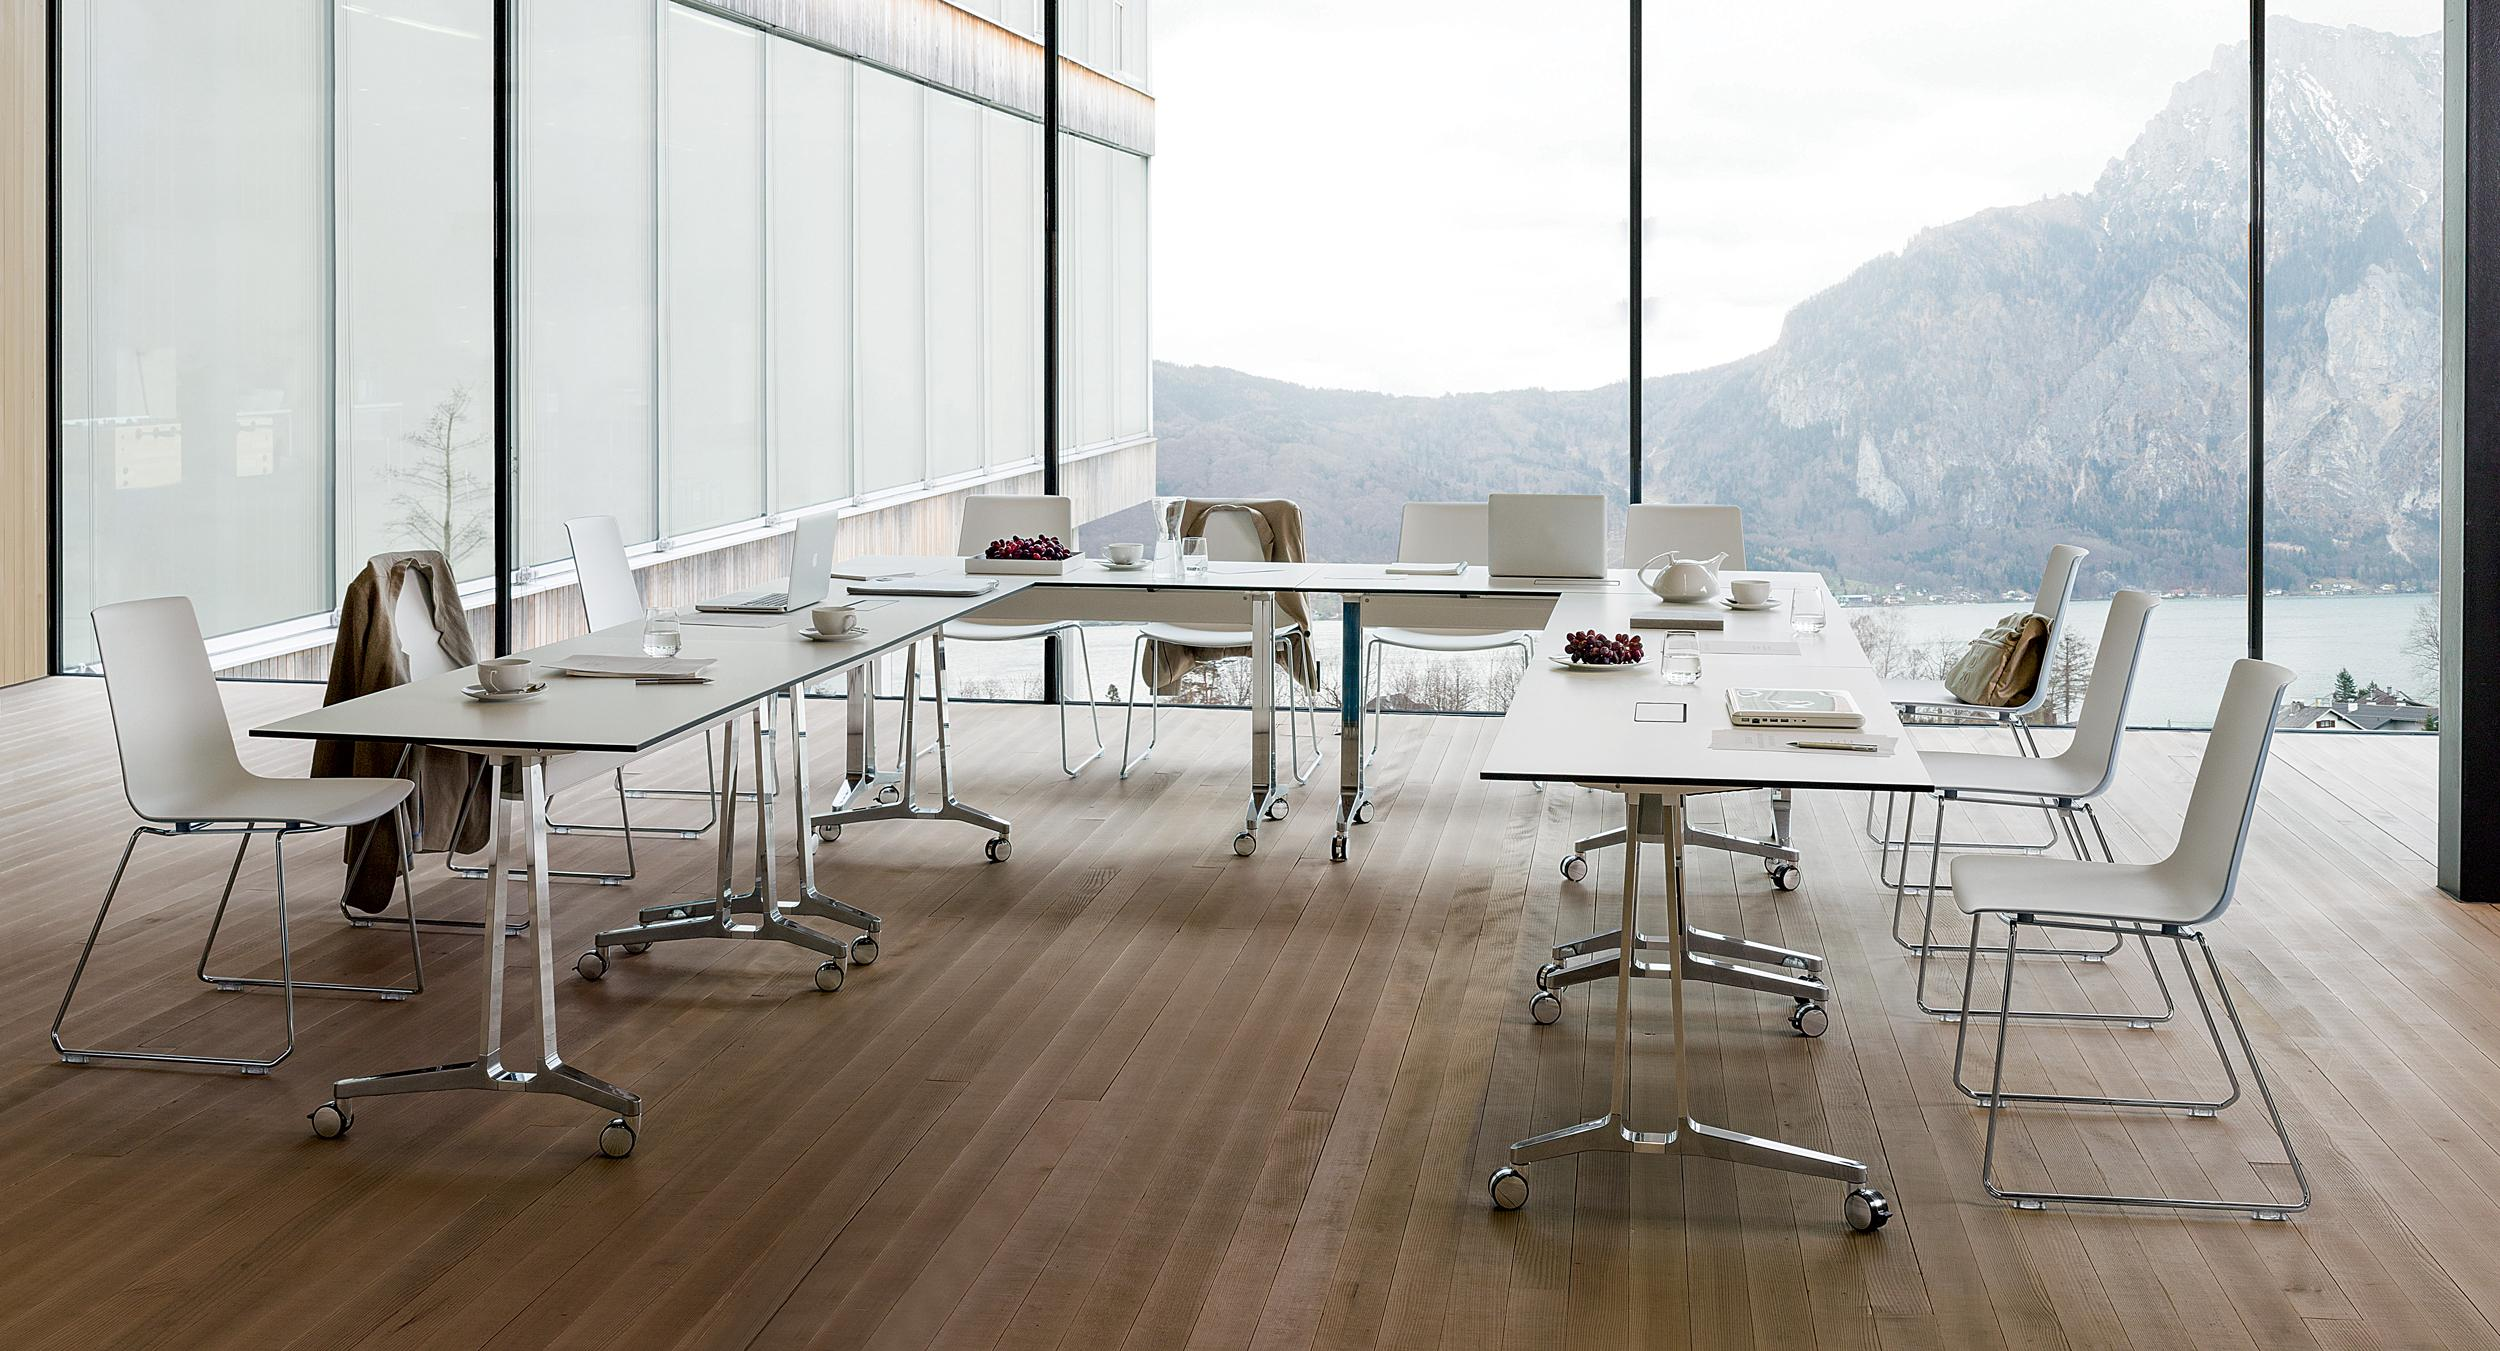 Skill C-leg tables are ideal for training and other single-sided seating configurations.